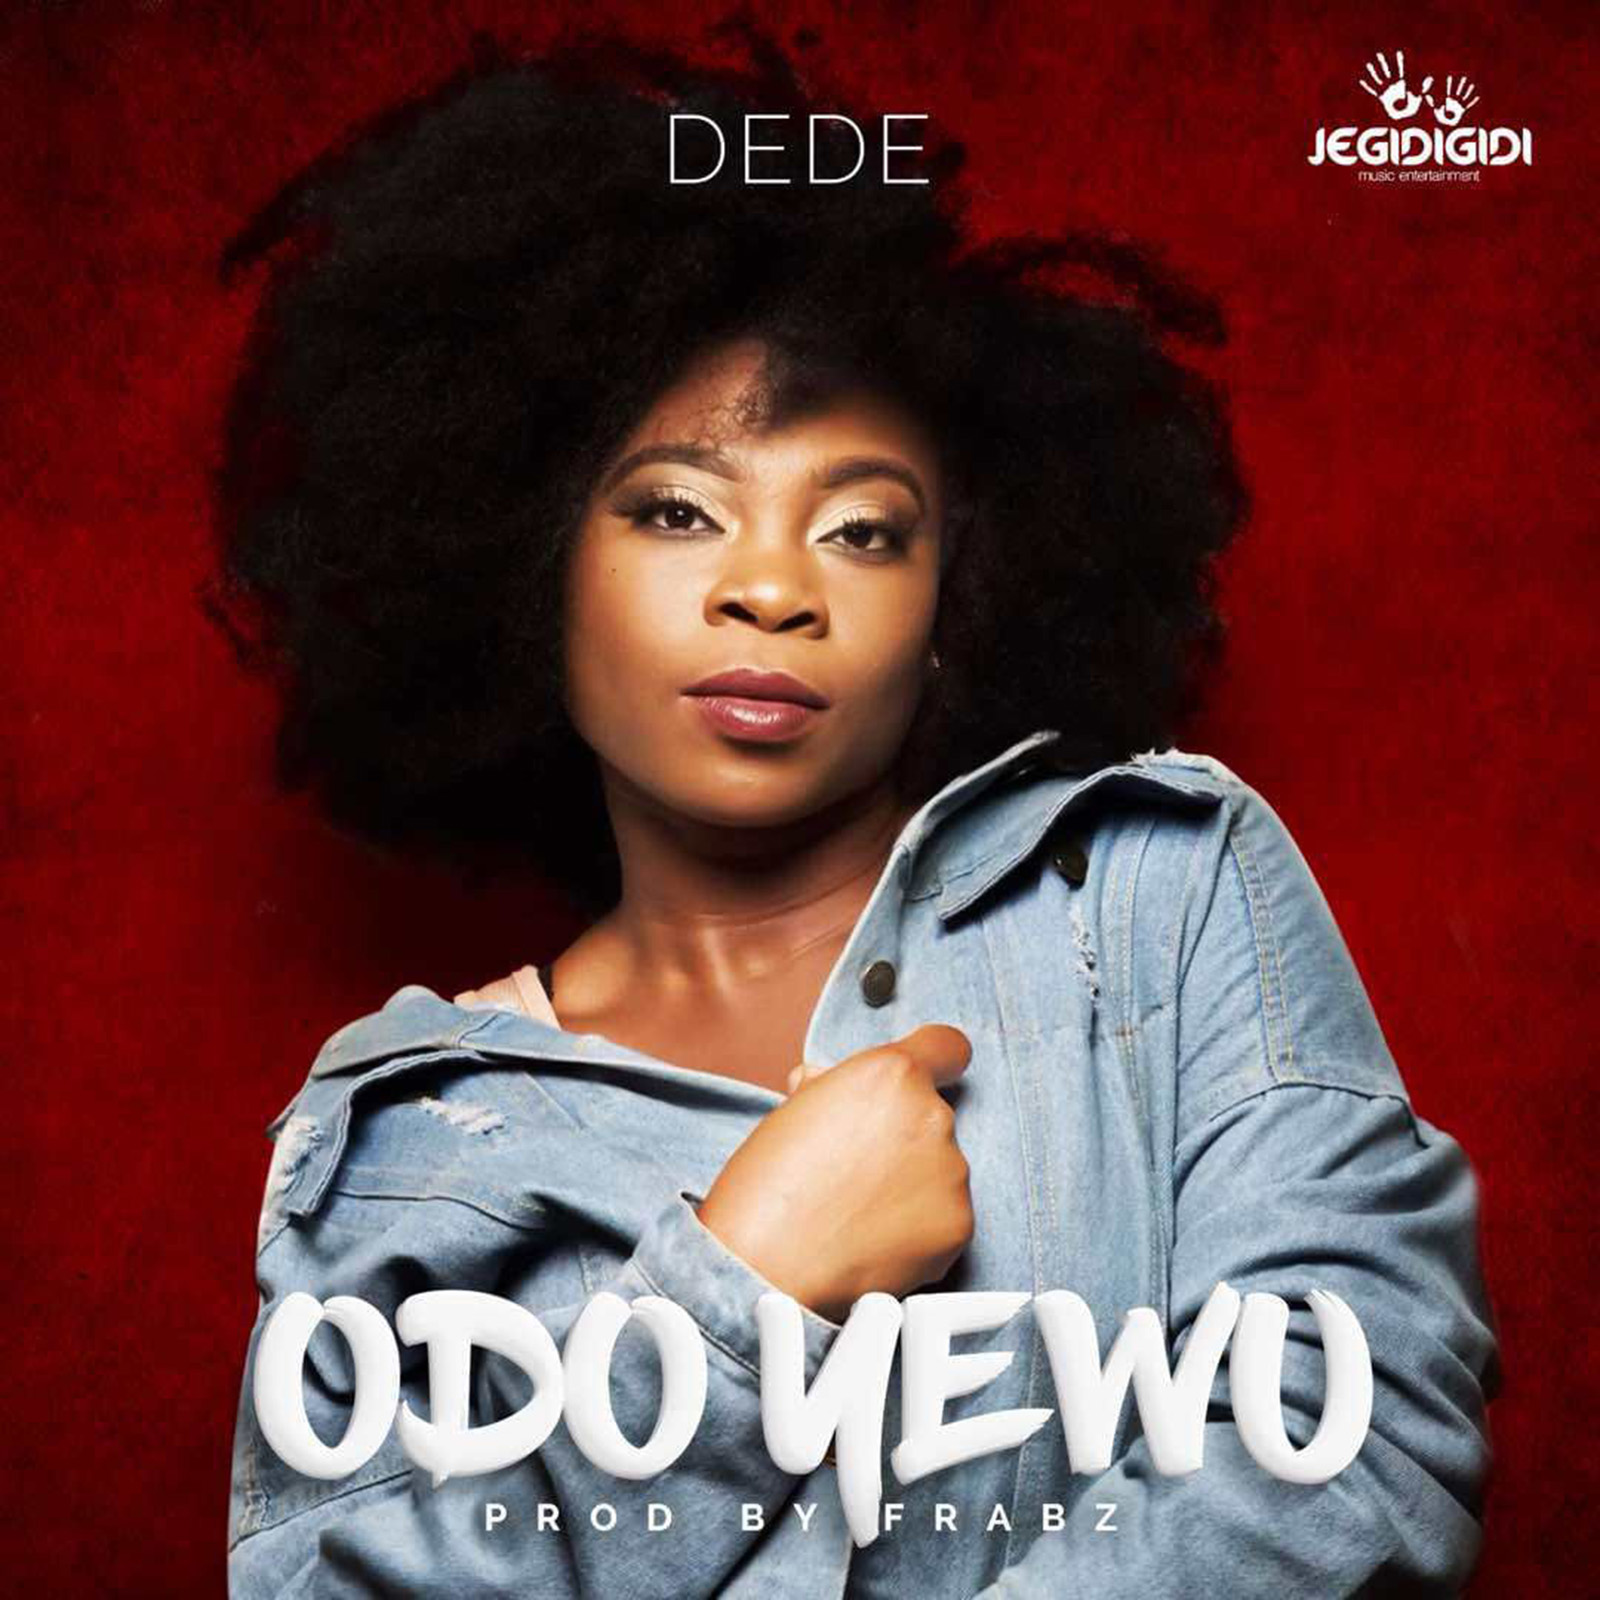 Odo Yewu by Dede